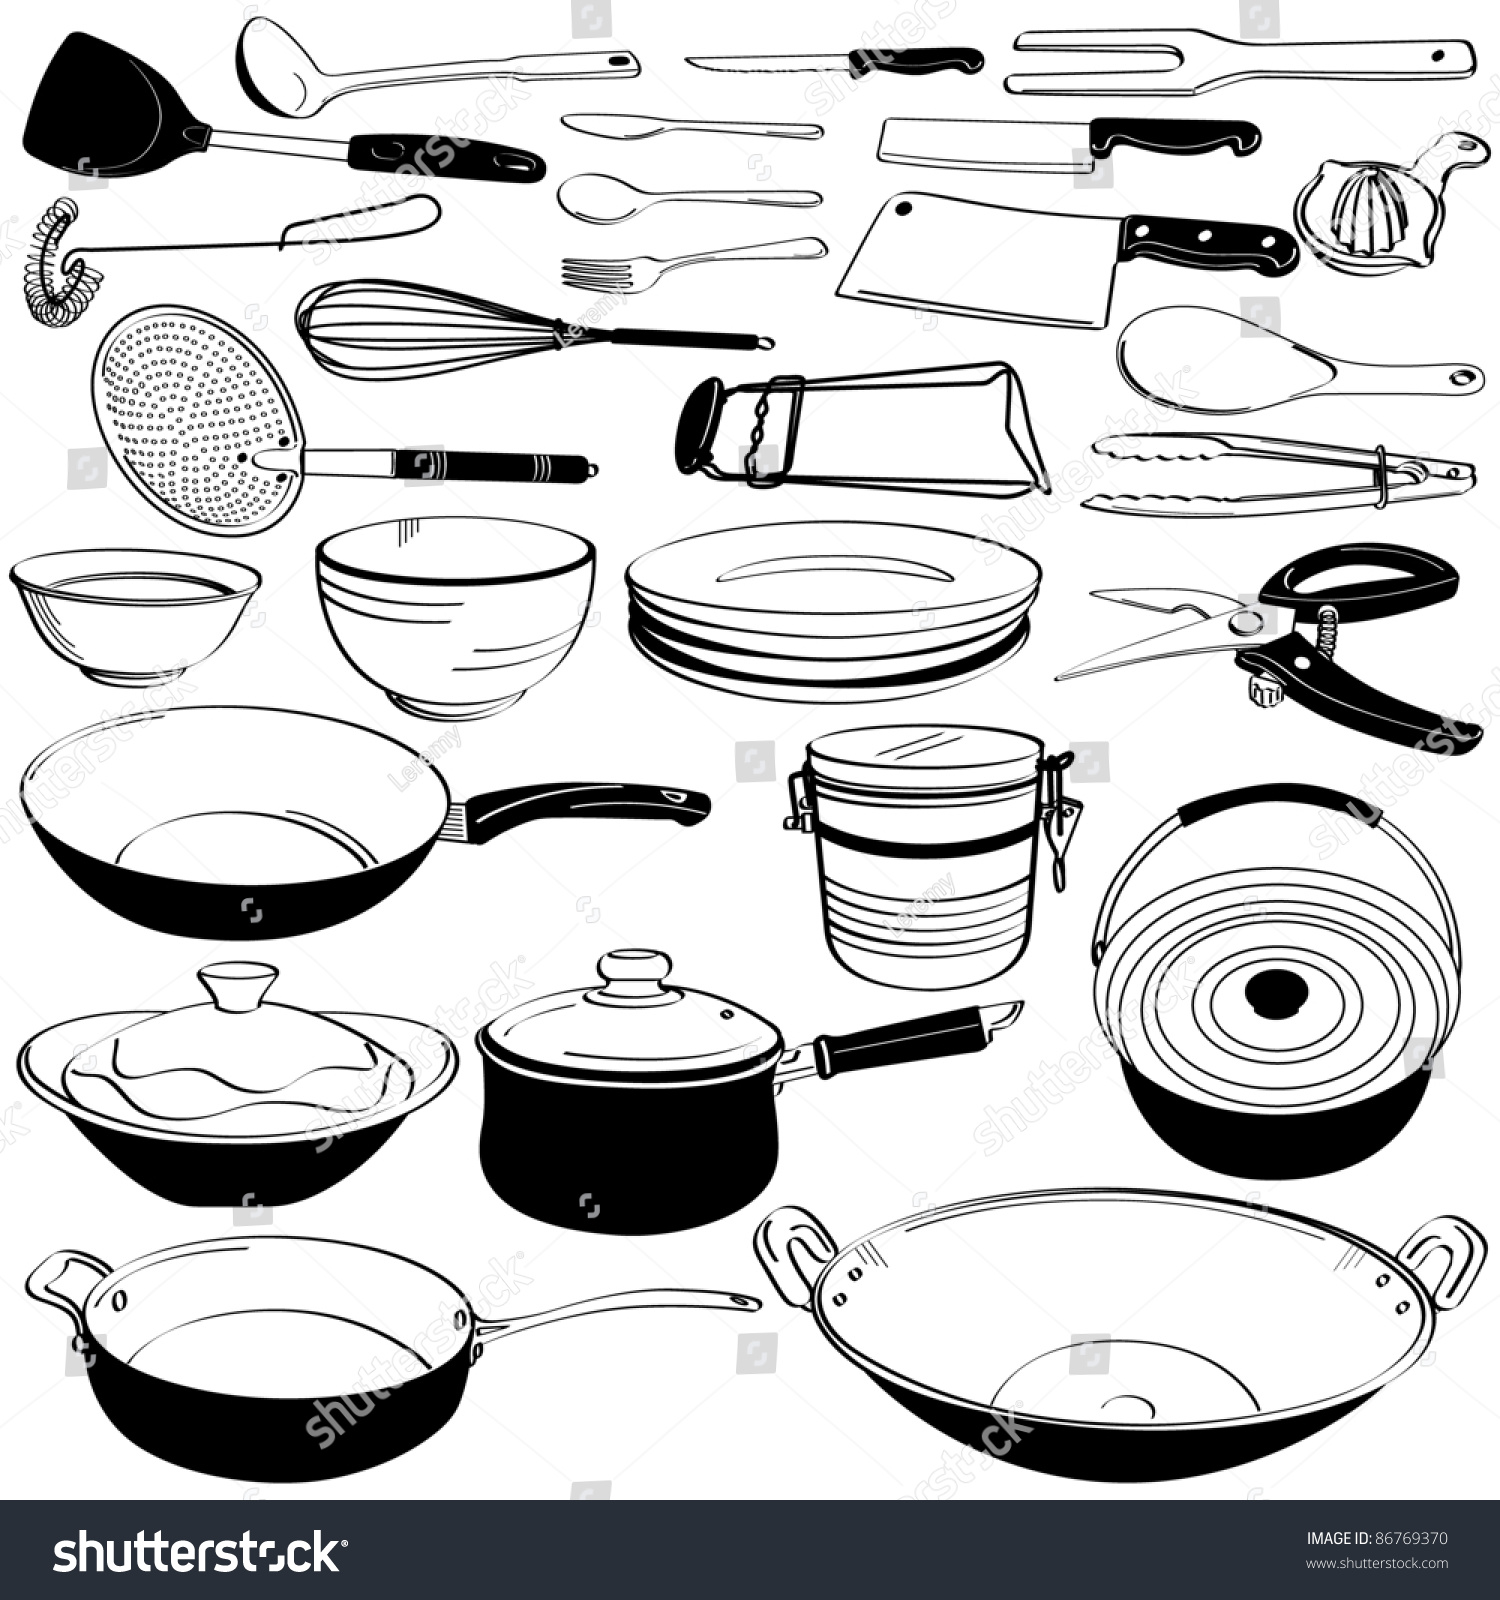 kitchen tool utensil equipment doodle drawing stock vector royalty